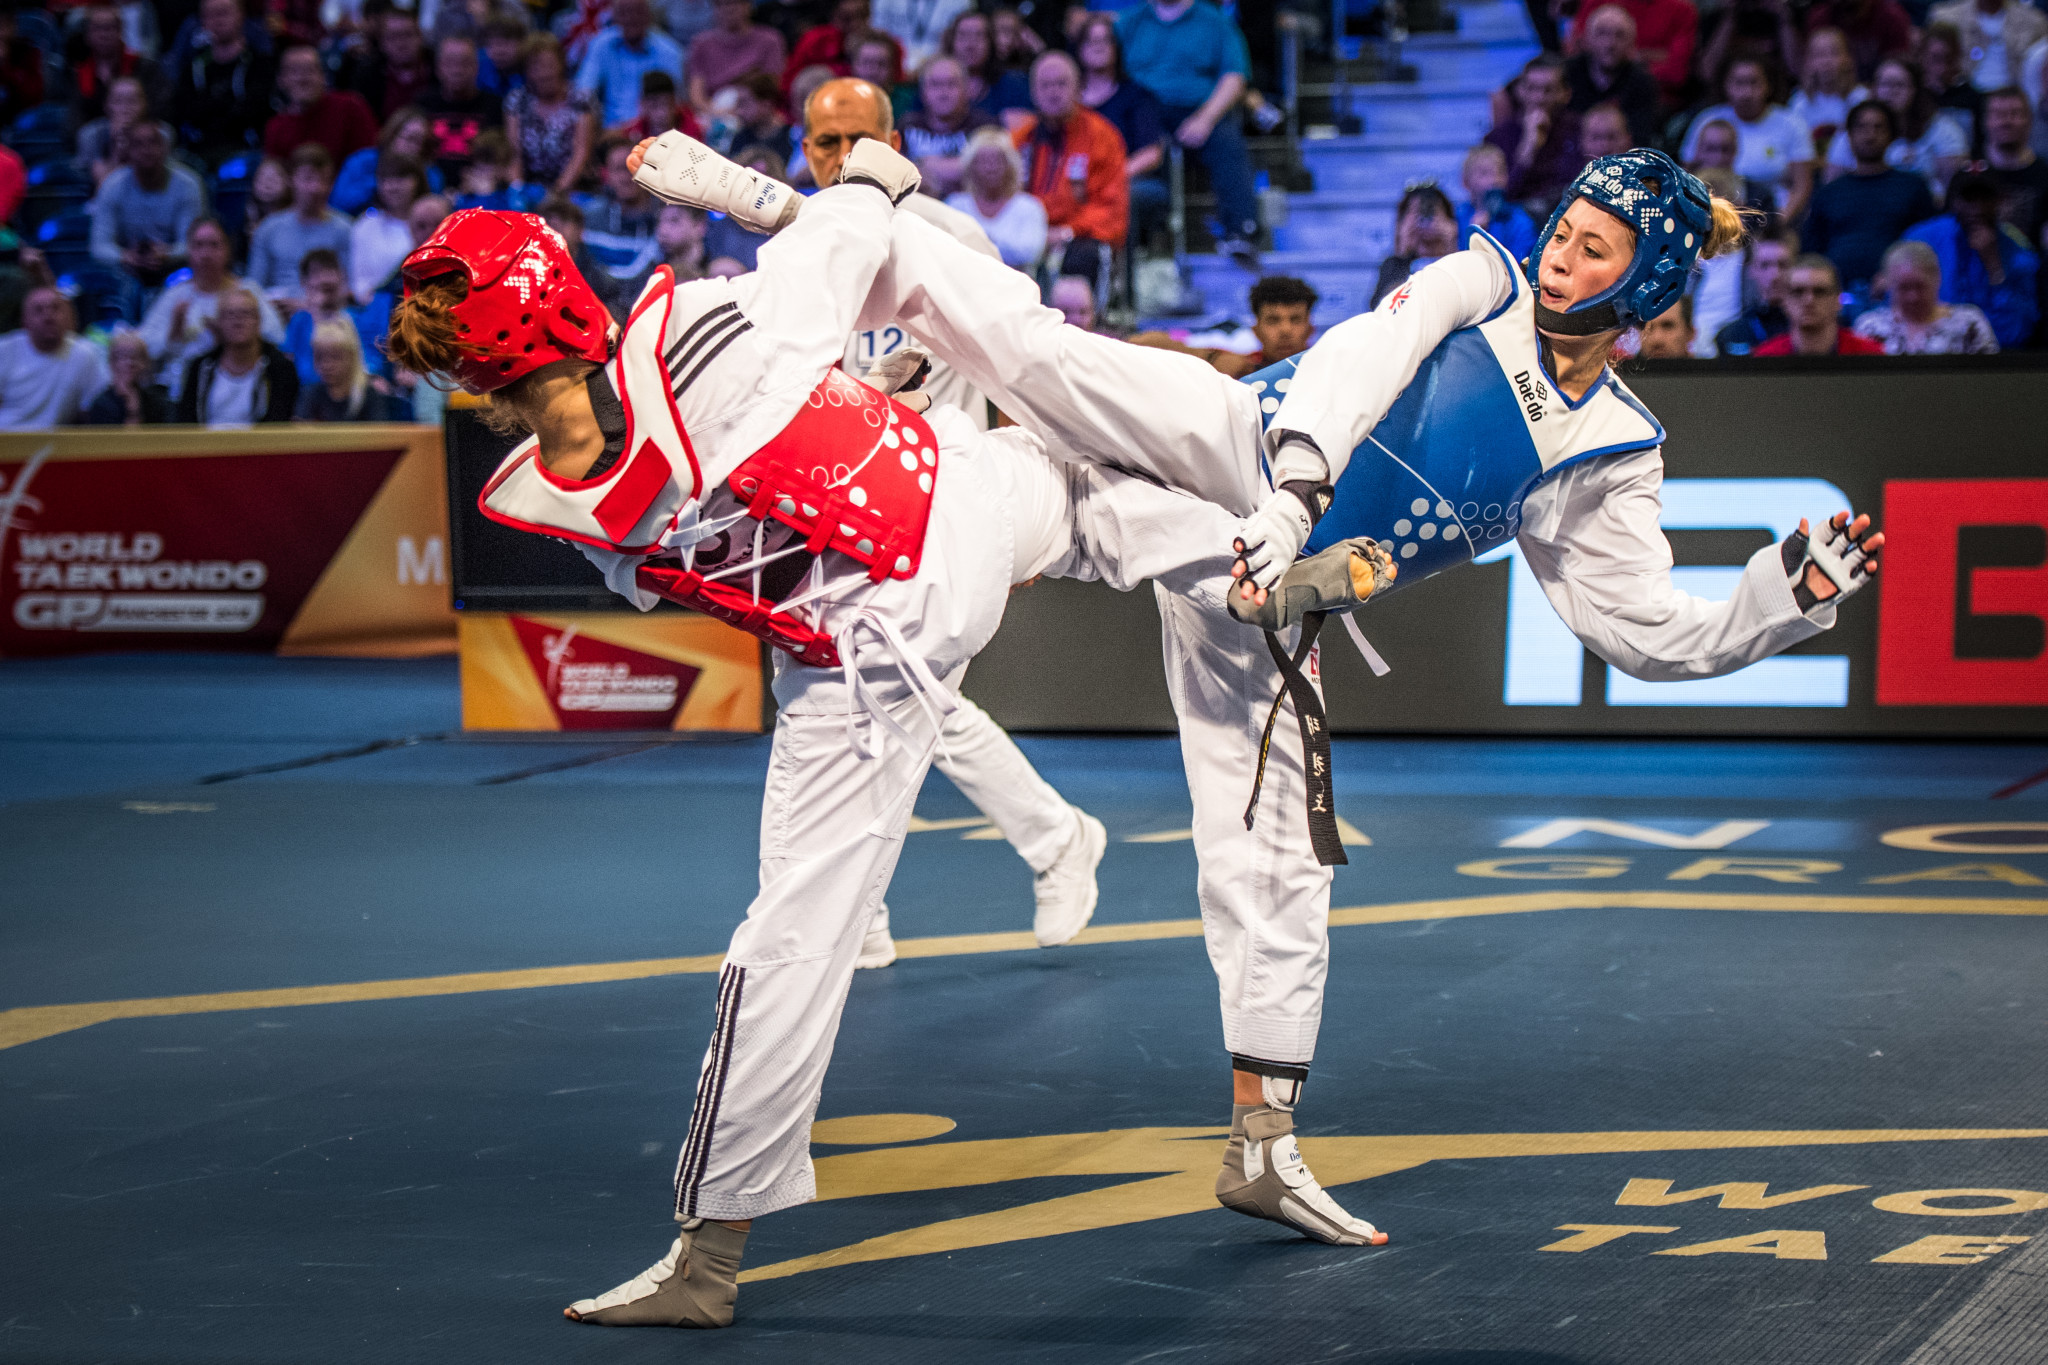 Jones takes home World Taekwondo Grand Prix gold in Manchester